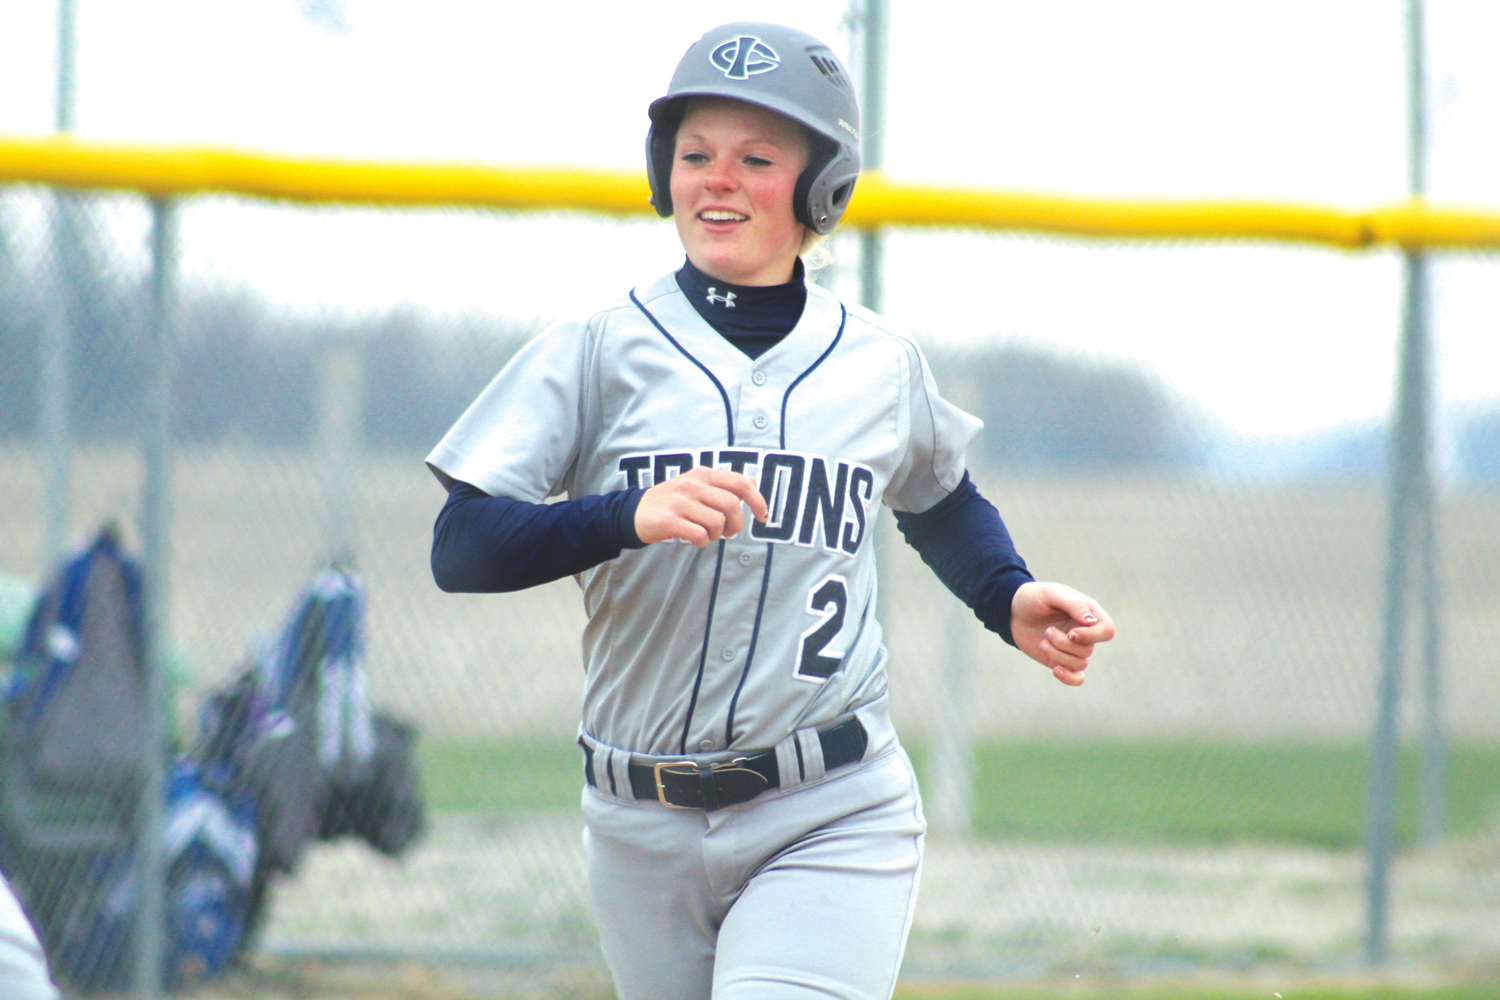 Tritons Earn Sweep Over Niacc News Sports Jobs